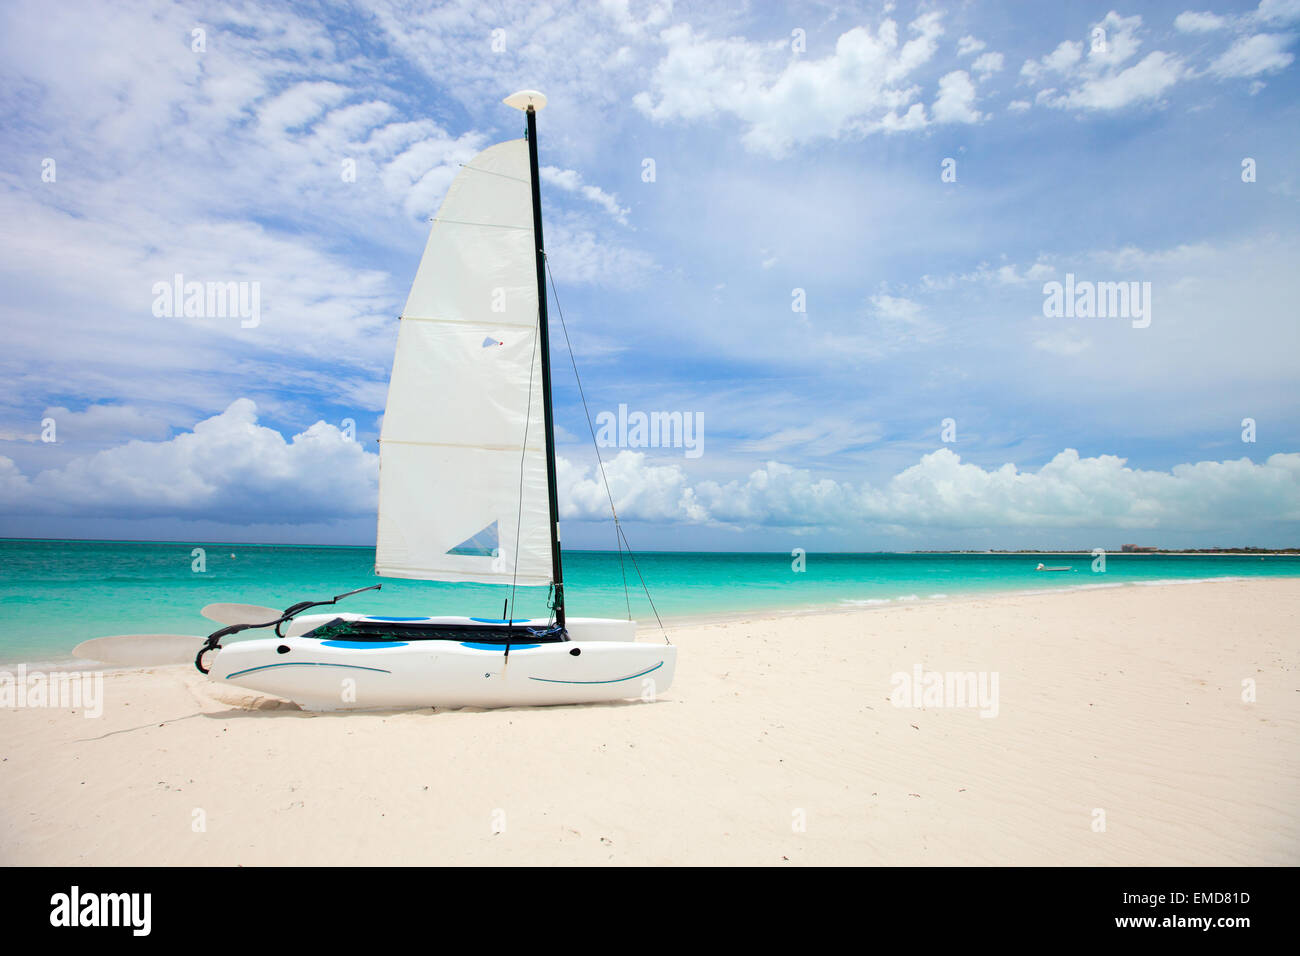 Catamaran at tropical beach - Stock Image